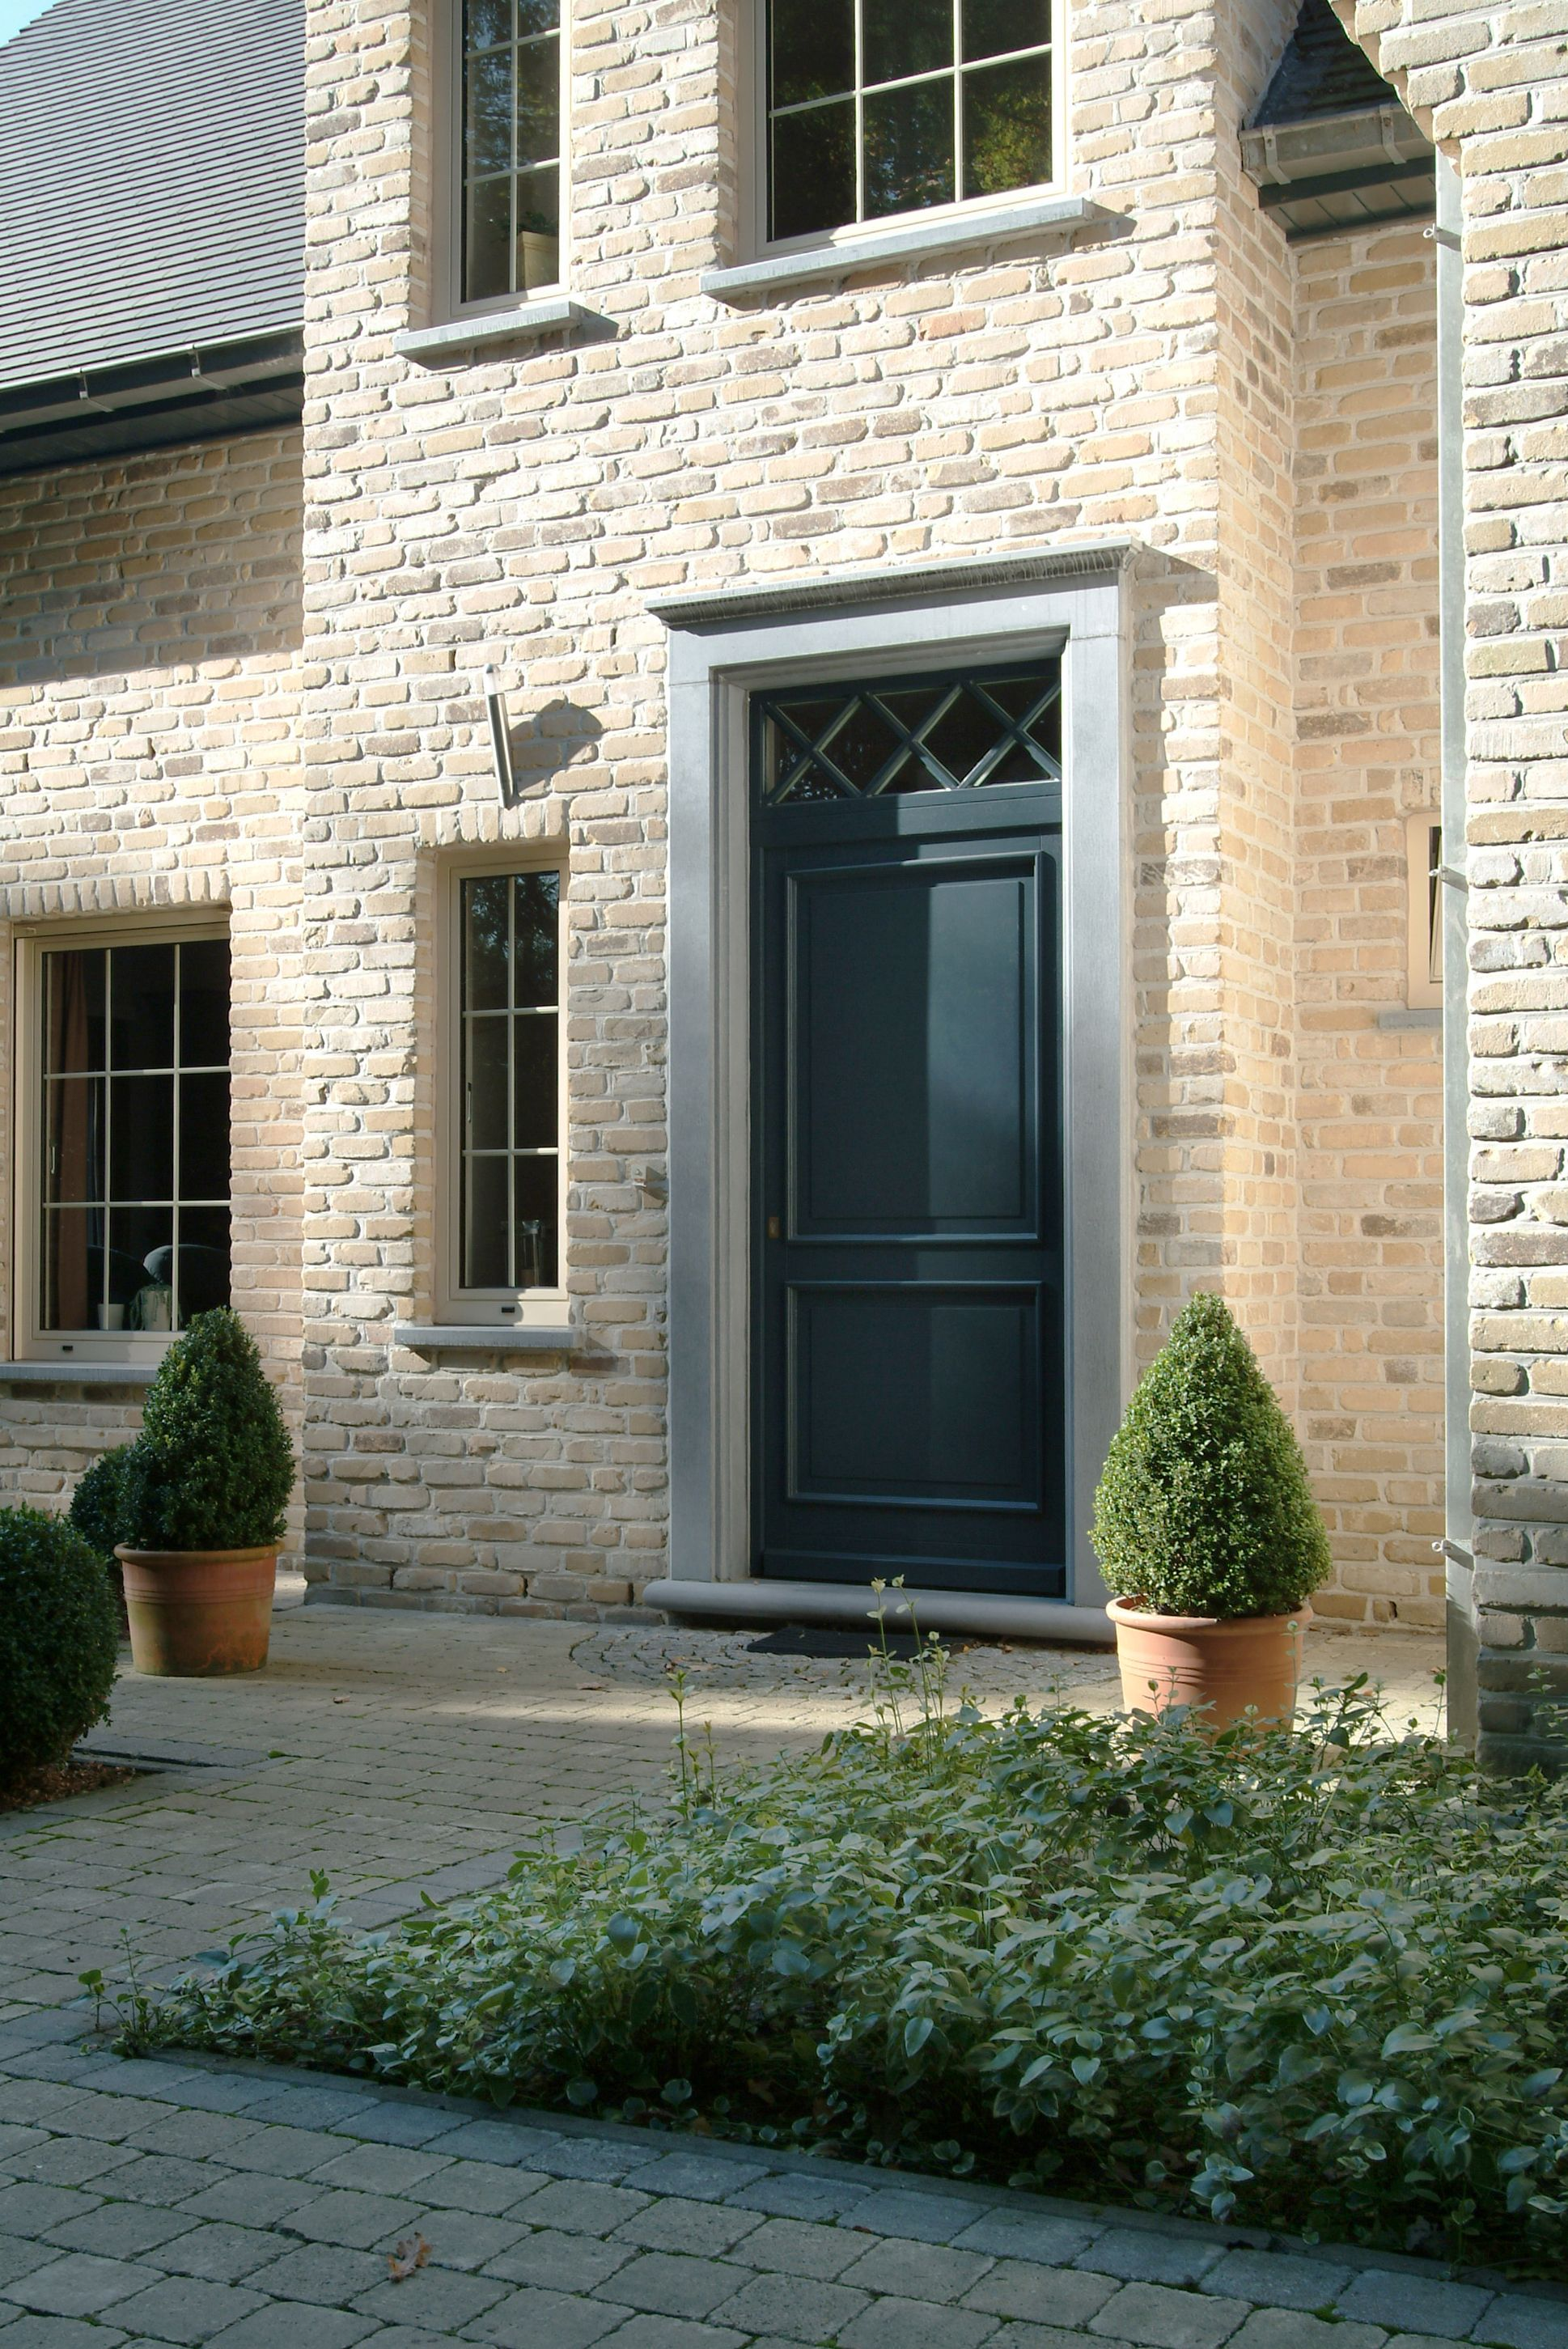 Exterior design of window  pin by tiffany egbert on for the exterior  pinterest  exterior